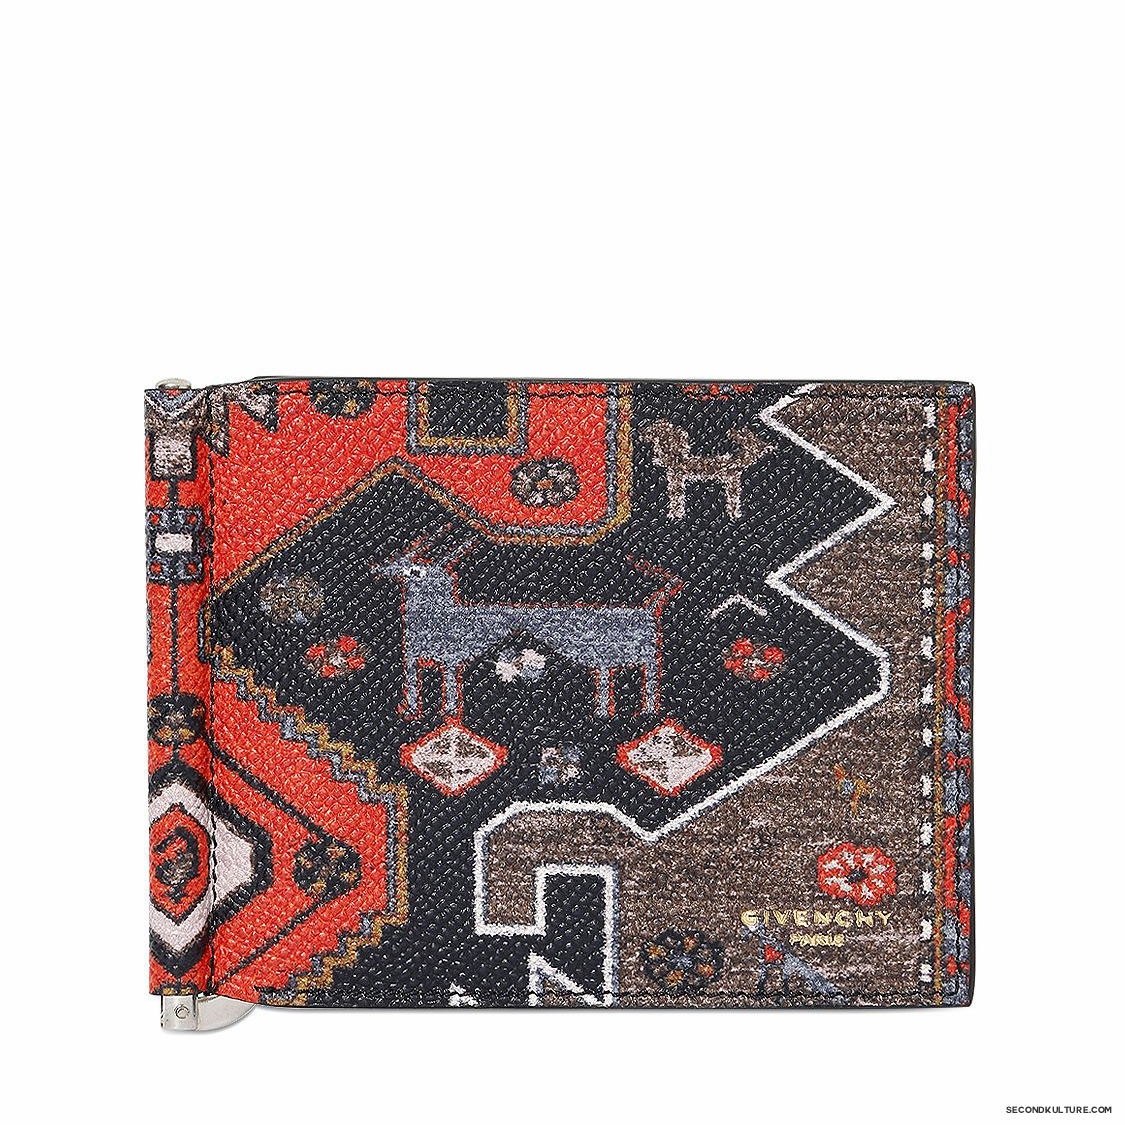 Givenchy-Native-American-Carpet-Print-Money-Clip-Leather-Wallet-Fall-Winter-2015-1